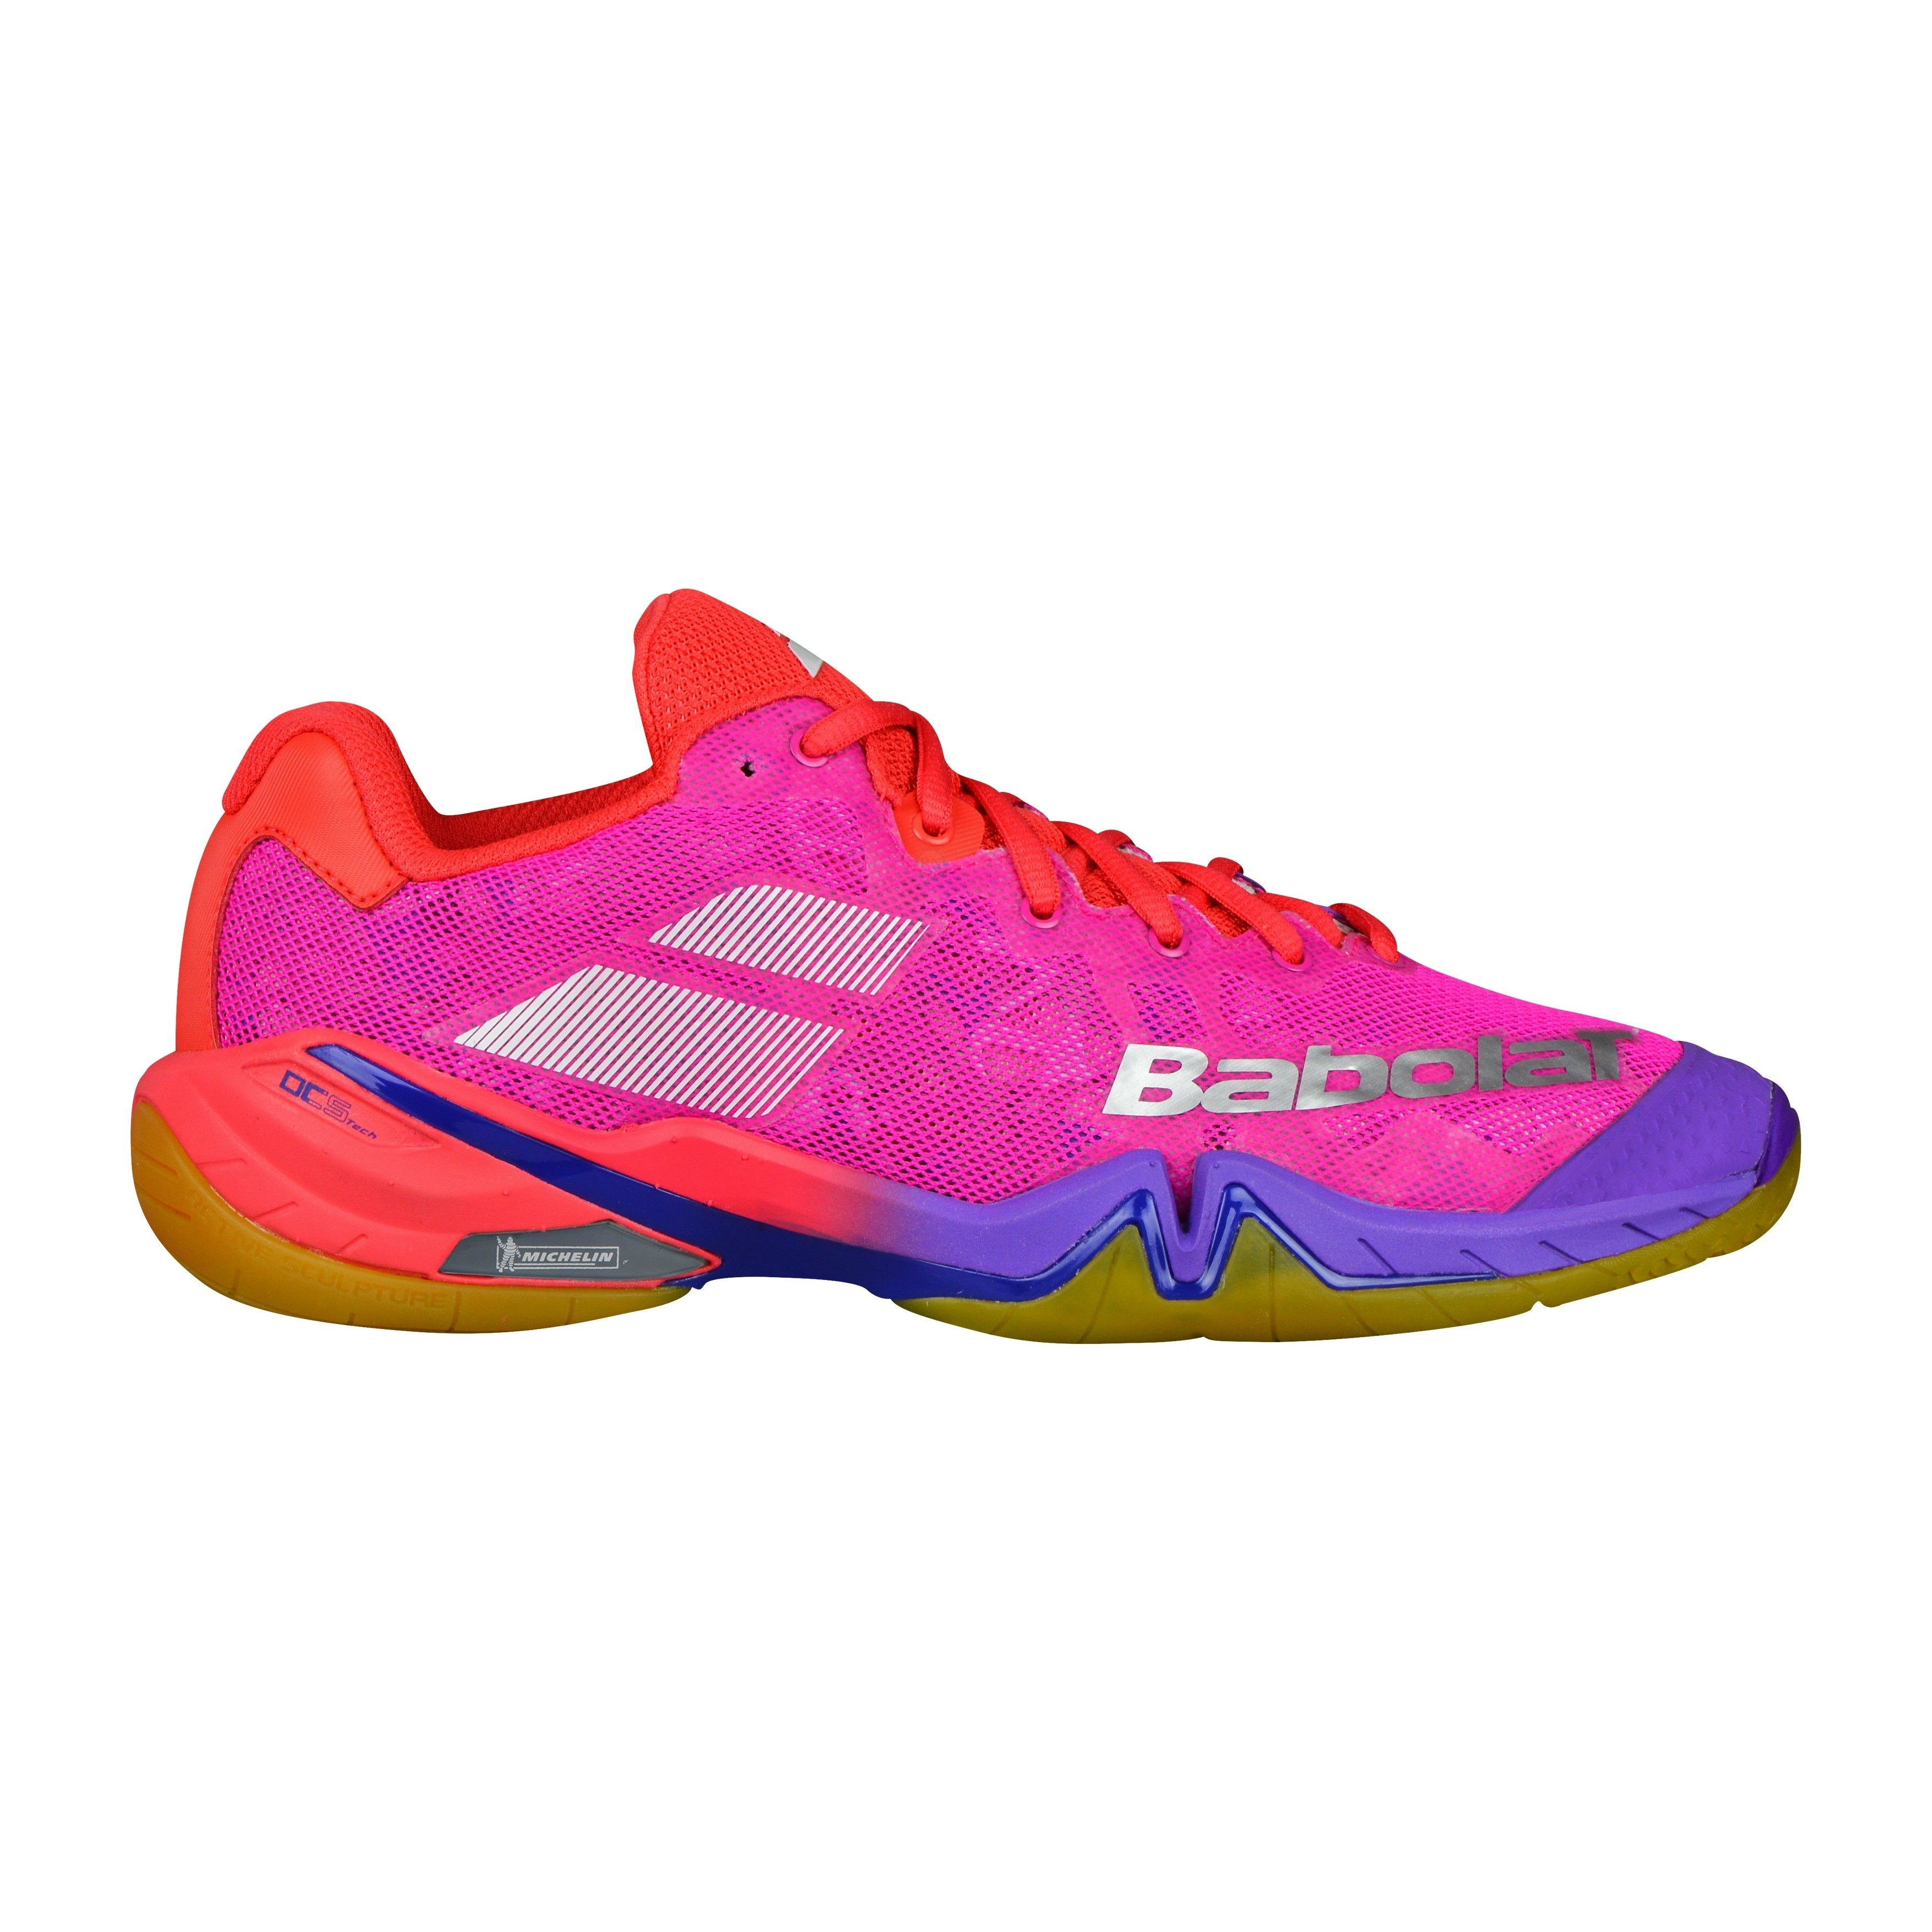 Babolat Shadow Tour pickleball shoe